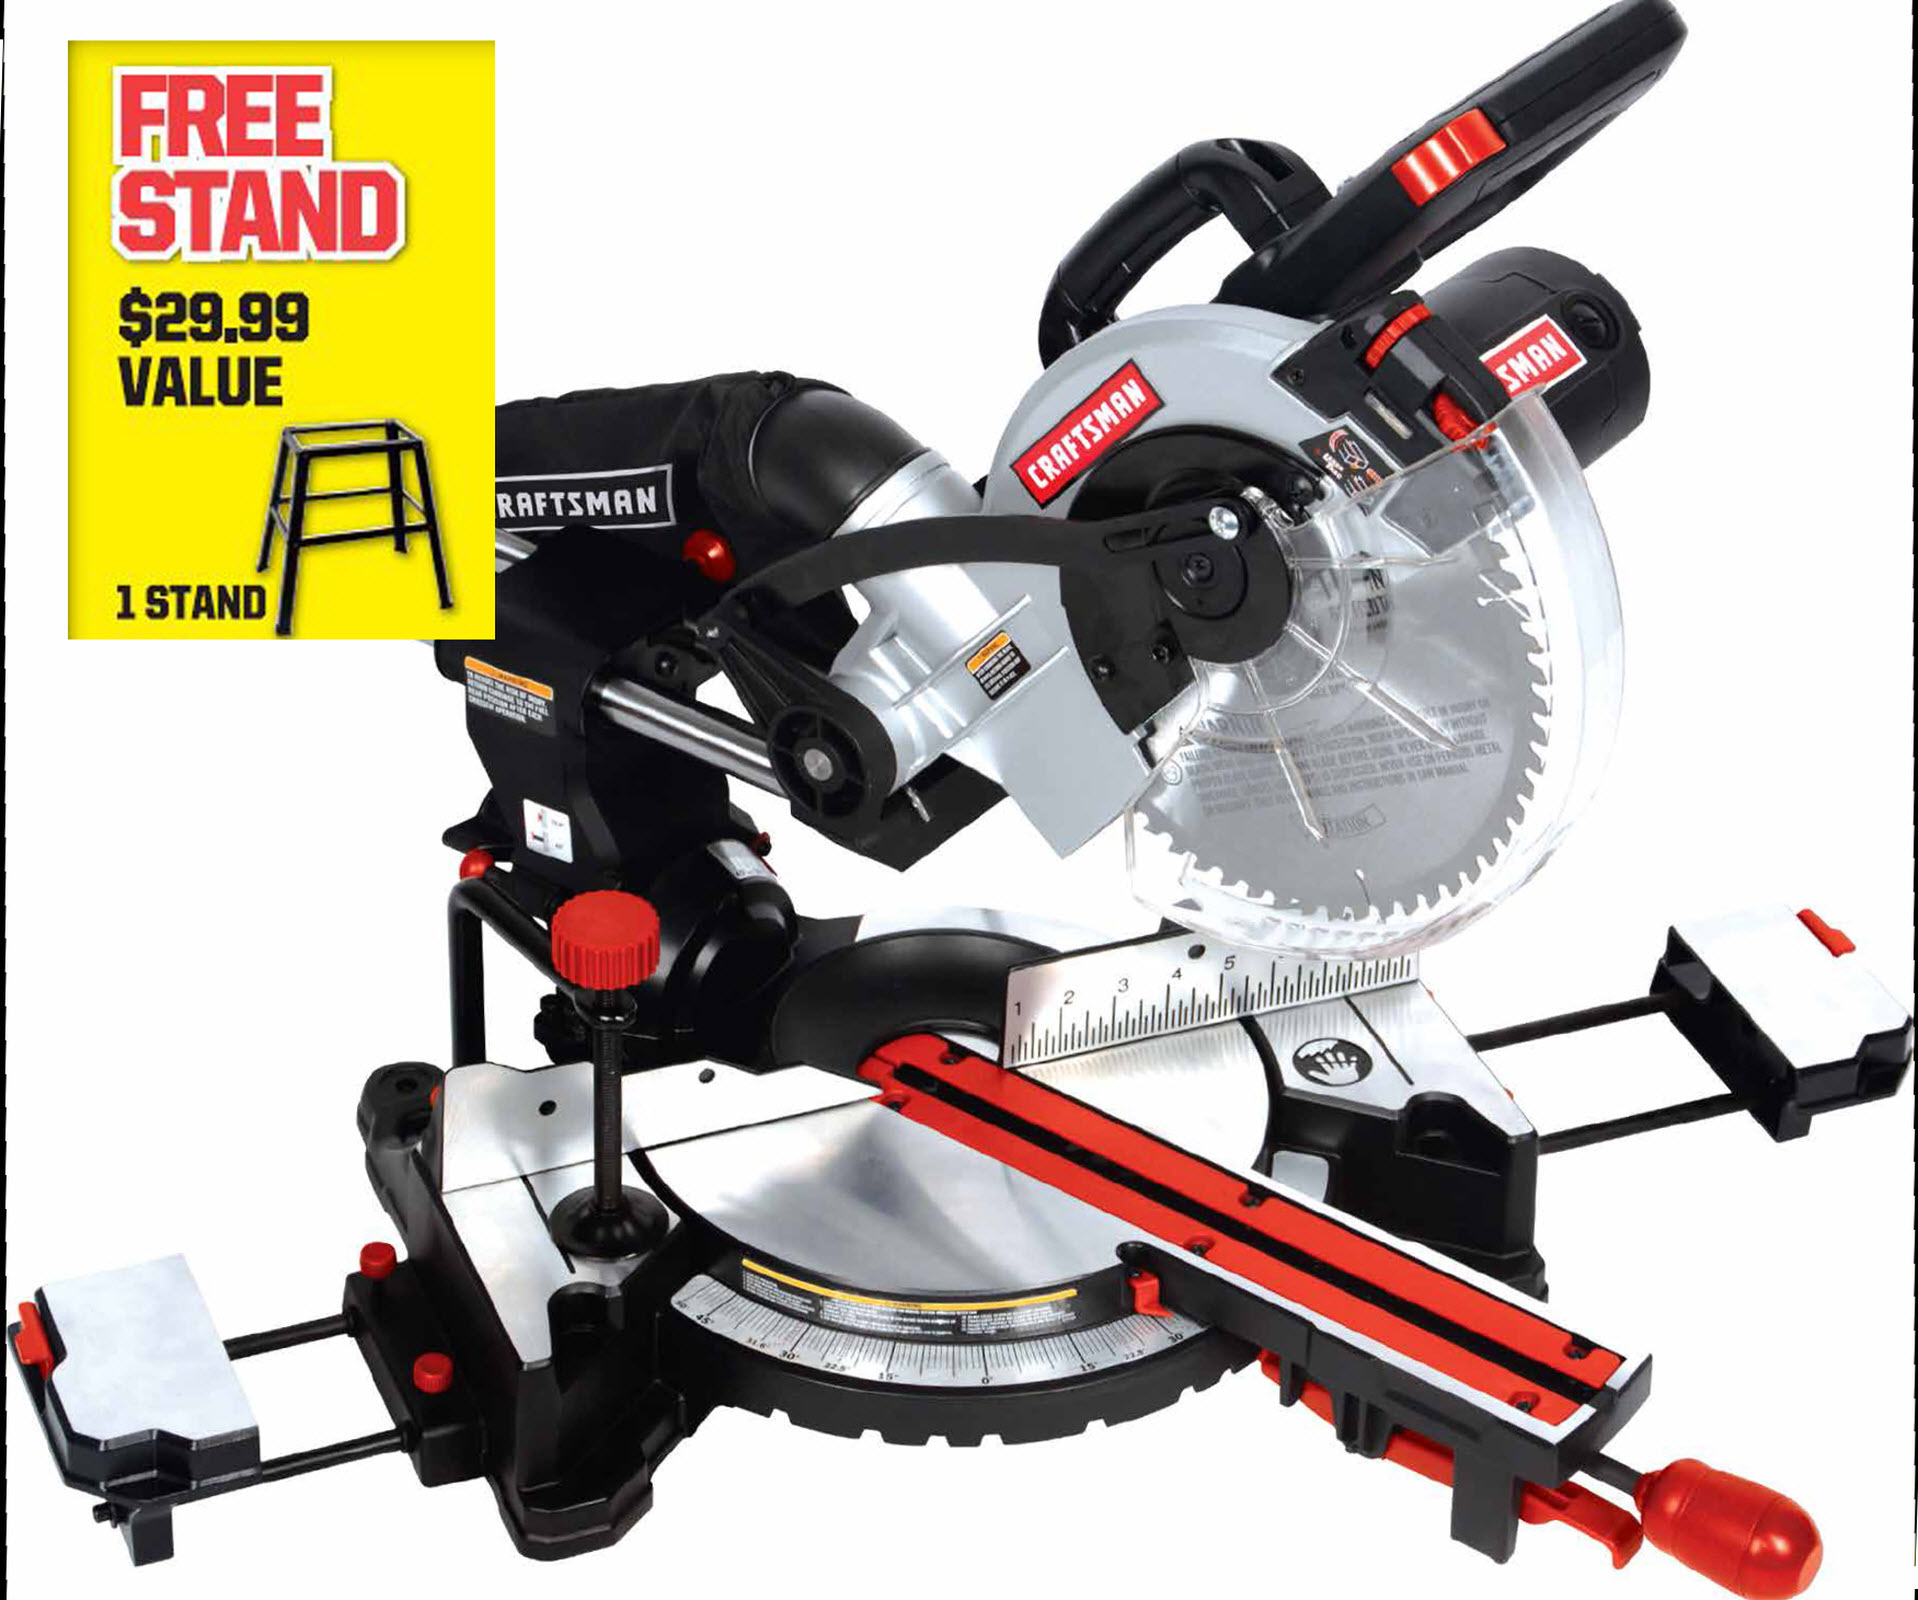 Craftsman Contractor Series Miter Saw